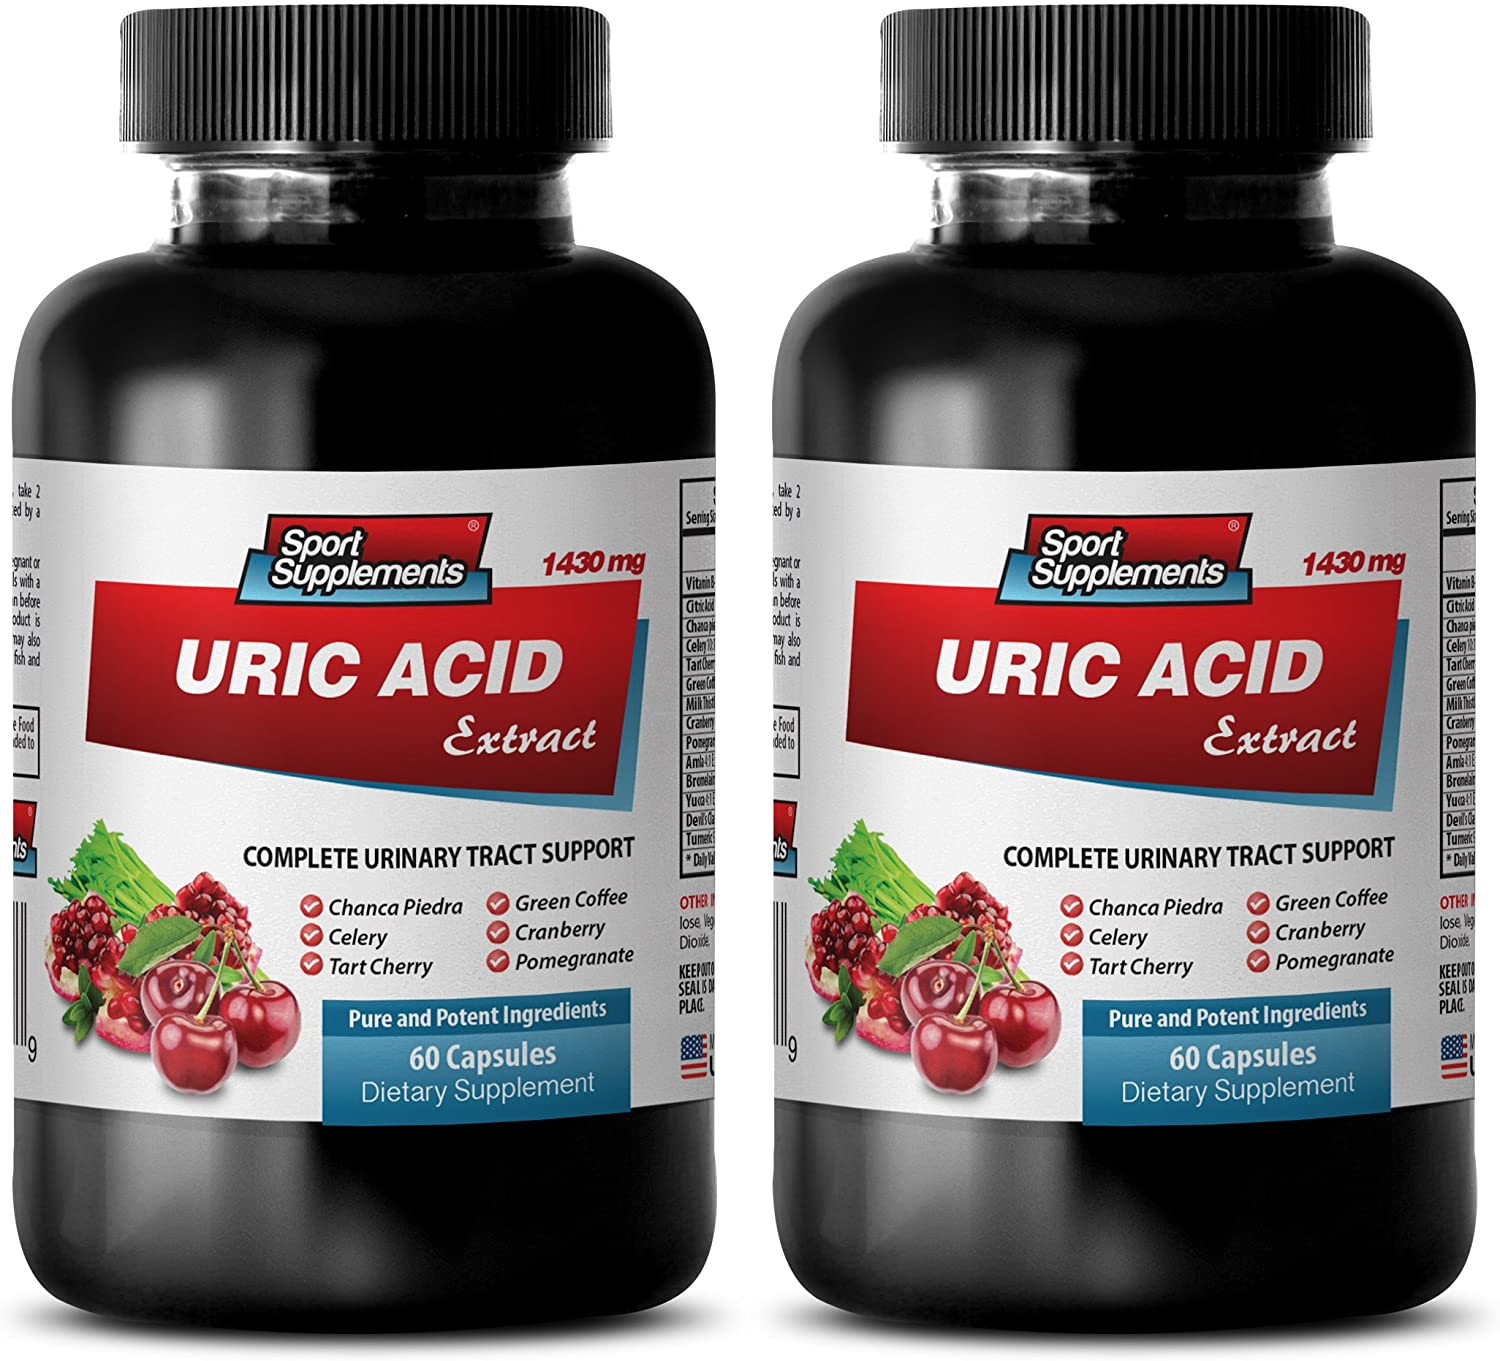 Weight Loss and Energy Pills - URIC Acid Formula Extract 1430Mg - Kidney Support Pills - 2 Bottles (120 Capsules)